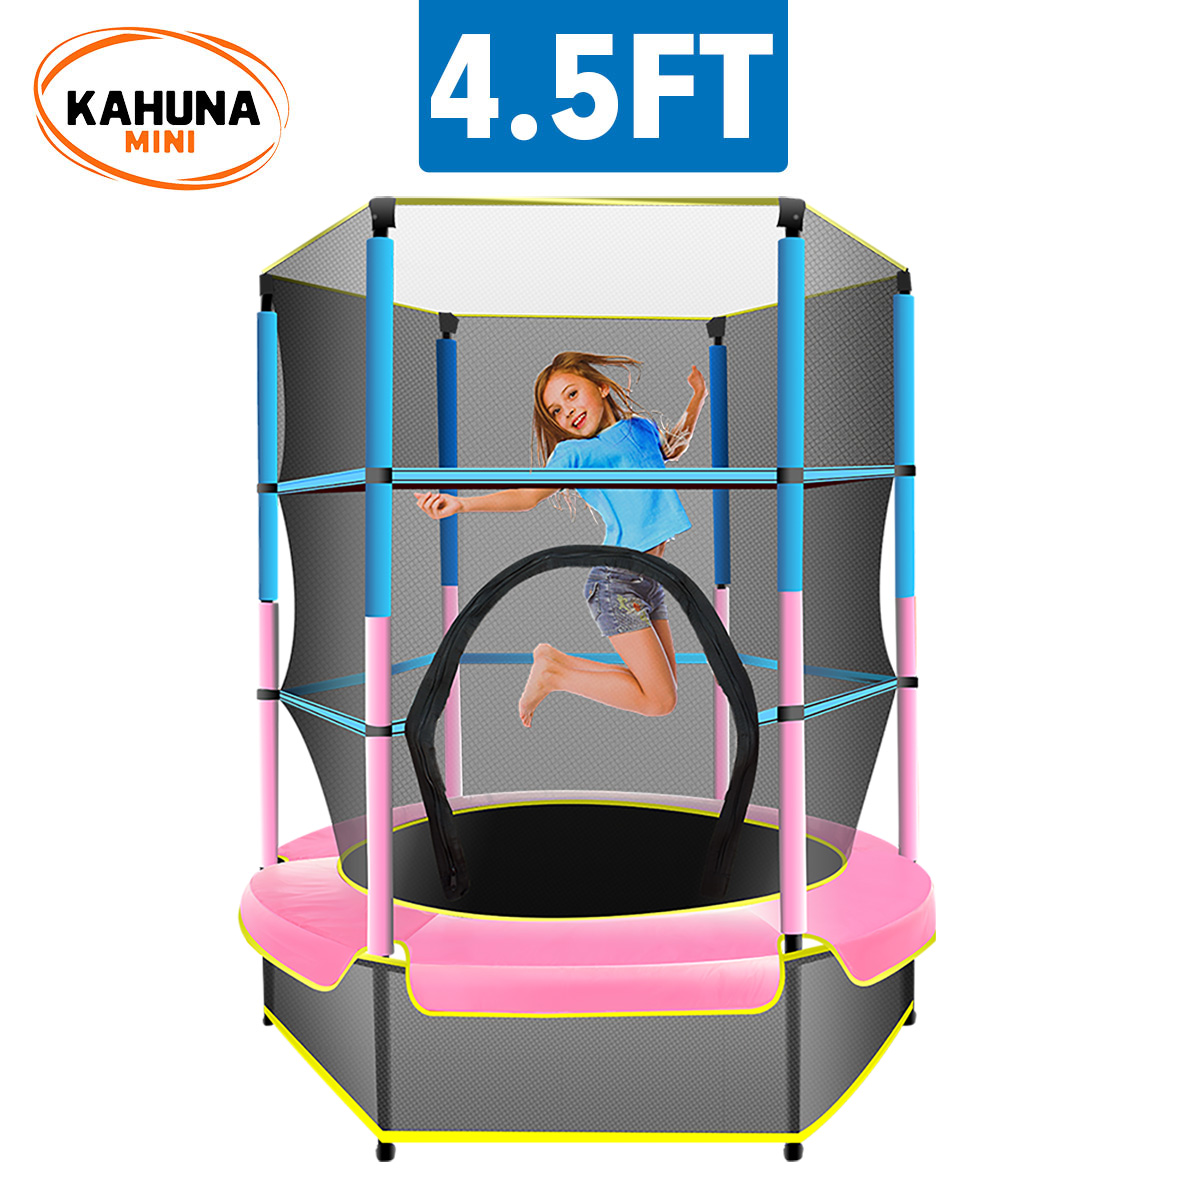 Kahuna Mini 4.5ft Trampoline Blue Pink